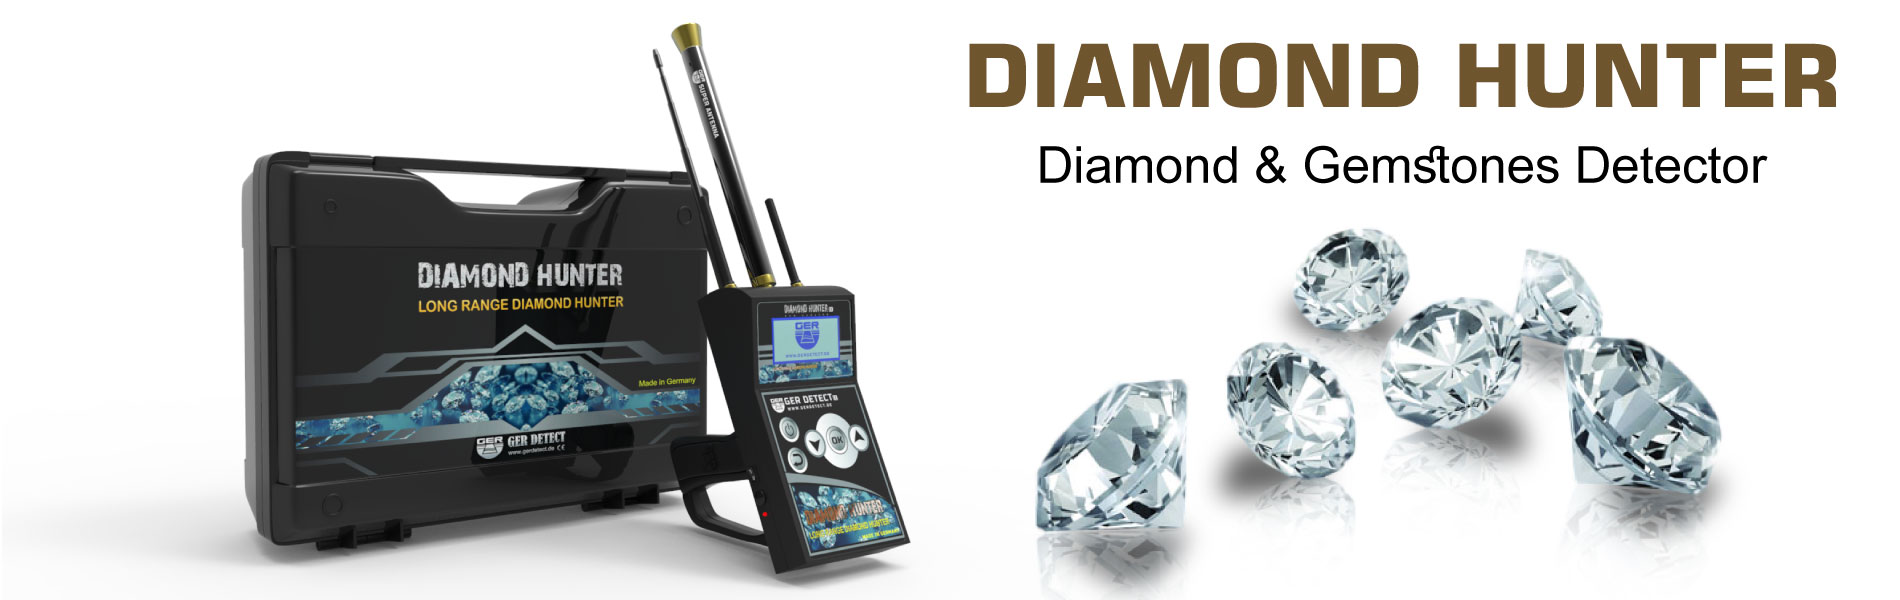 Diamond Hunter Device - diamond Detector - UIG DETECTORS COMPANY